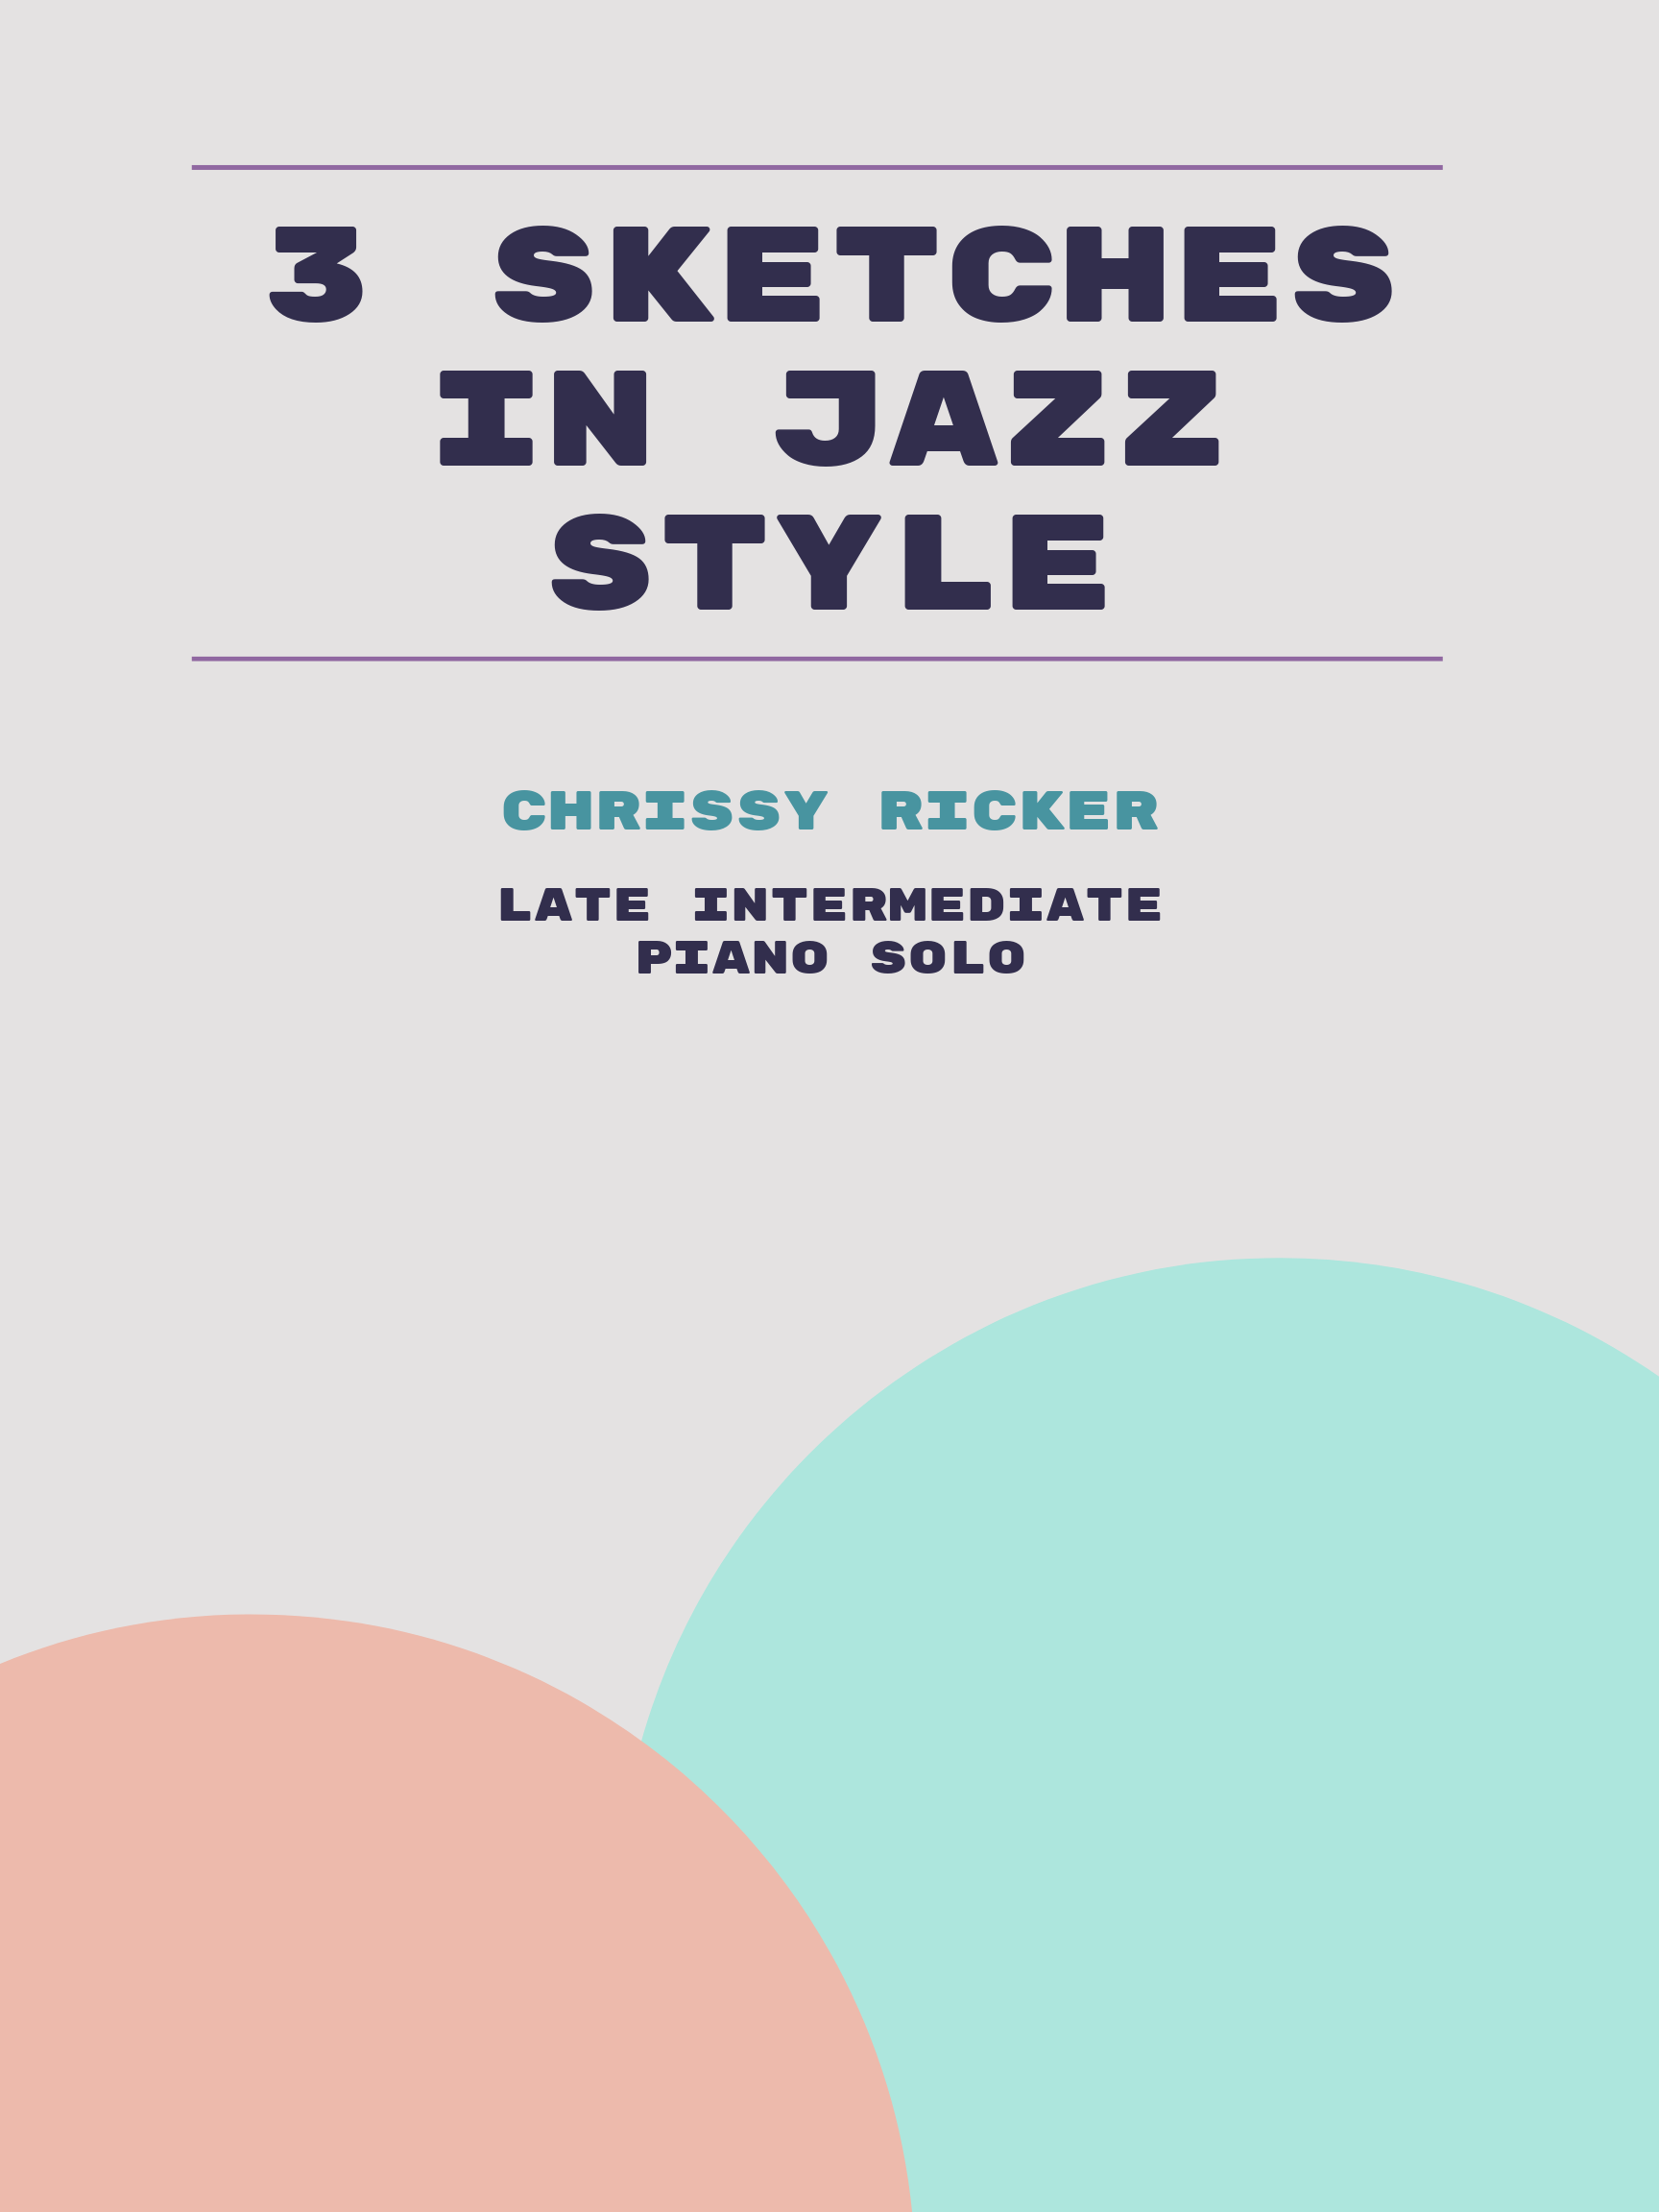 3 Sketches in Jazz Style by Chrissy Ricker